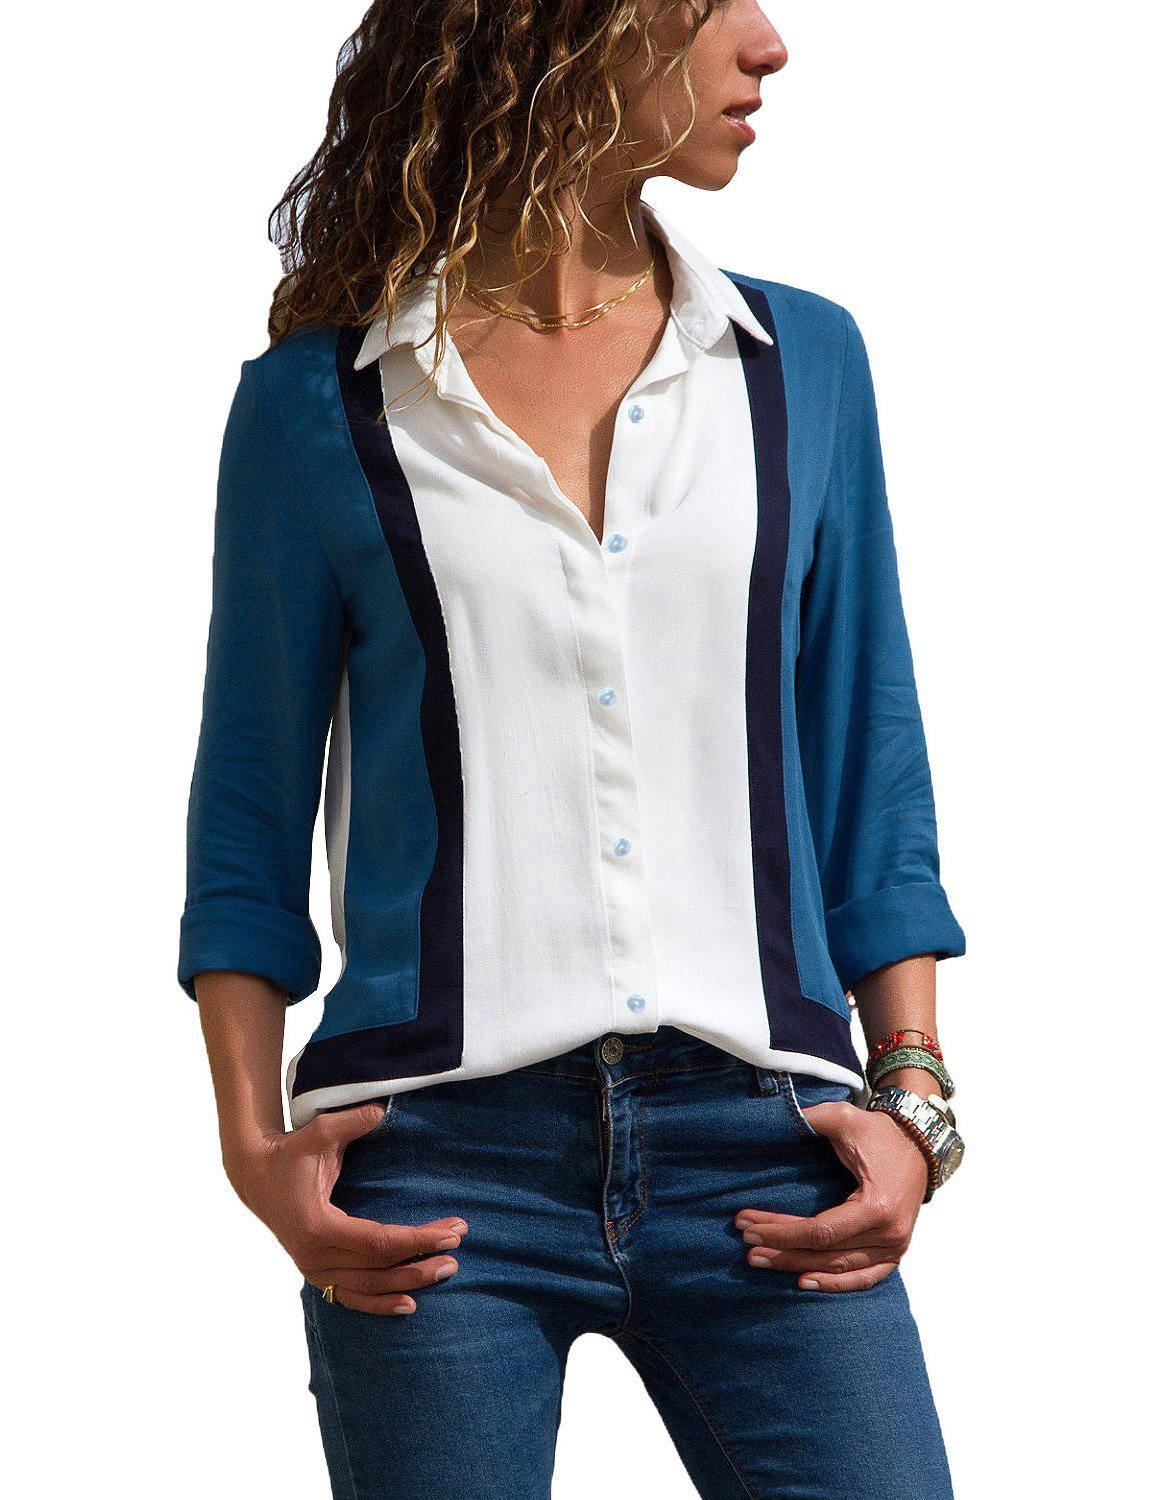 GRAPENT Women's Long Sleeve V Neck Stripe Shirt Casual Color Block Buttons Tops Blouse Medium (US 8-10)